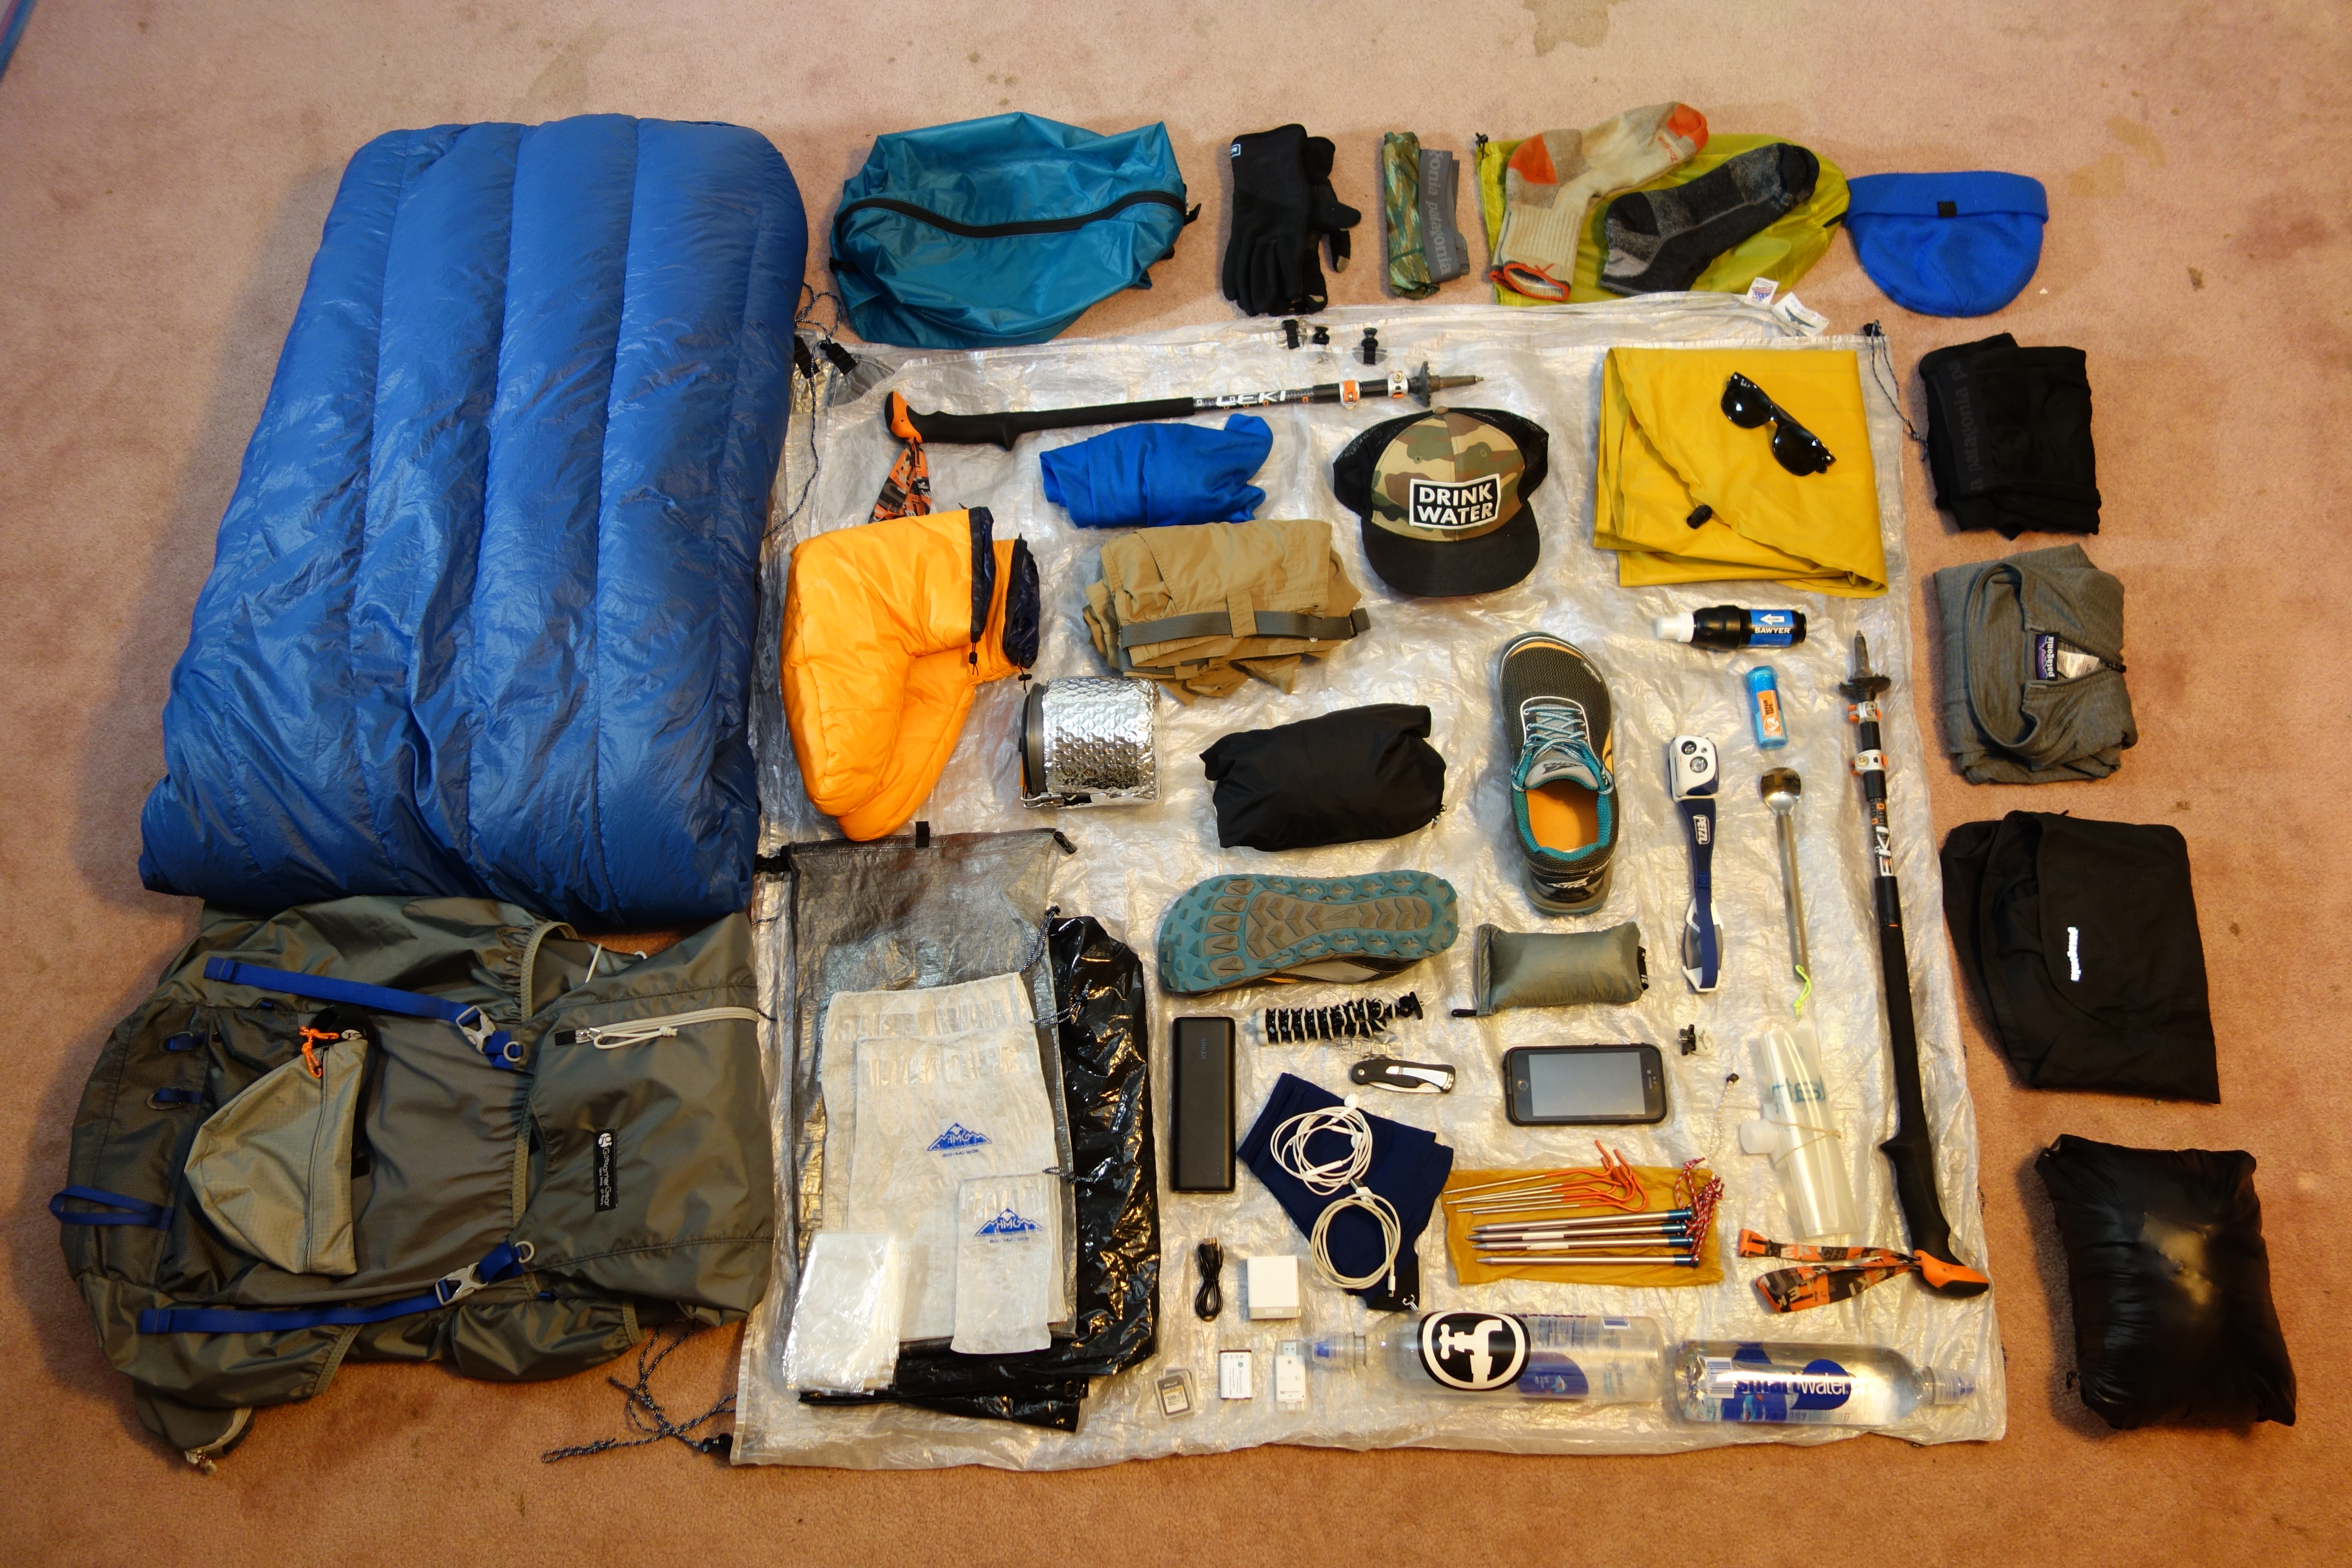 My 12lb Baby: The Gear List - The Trek